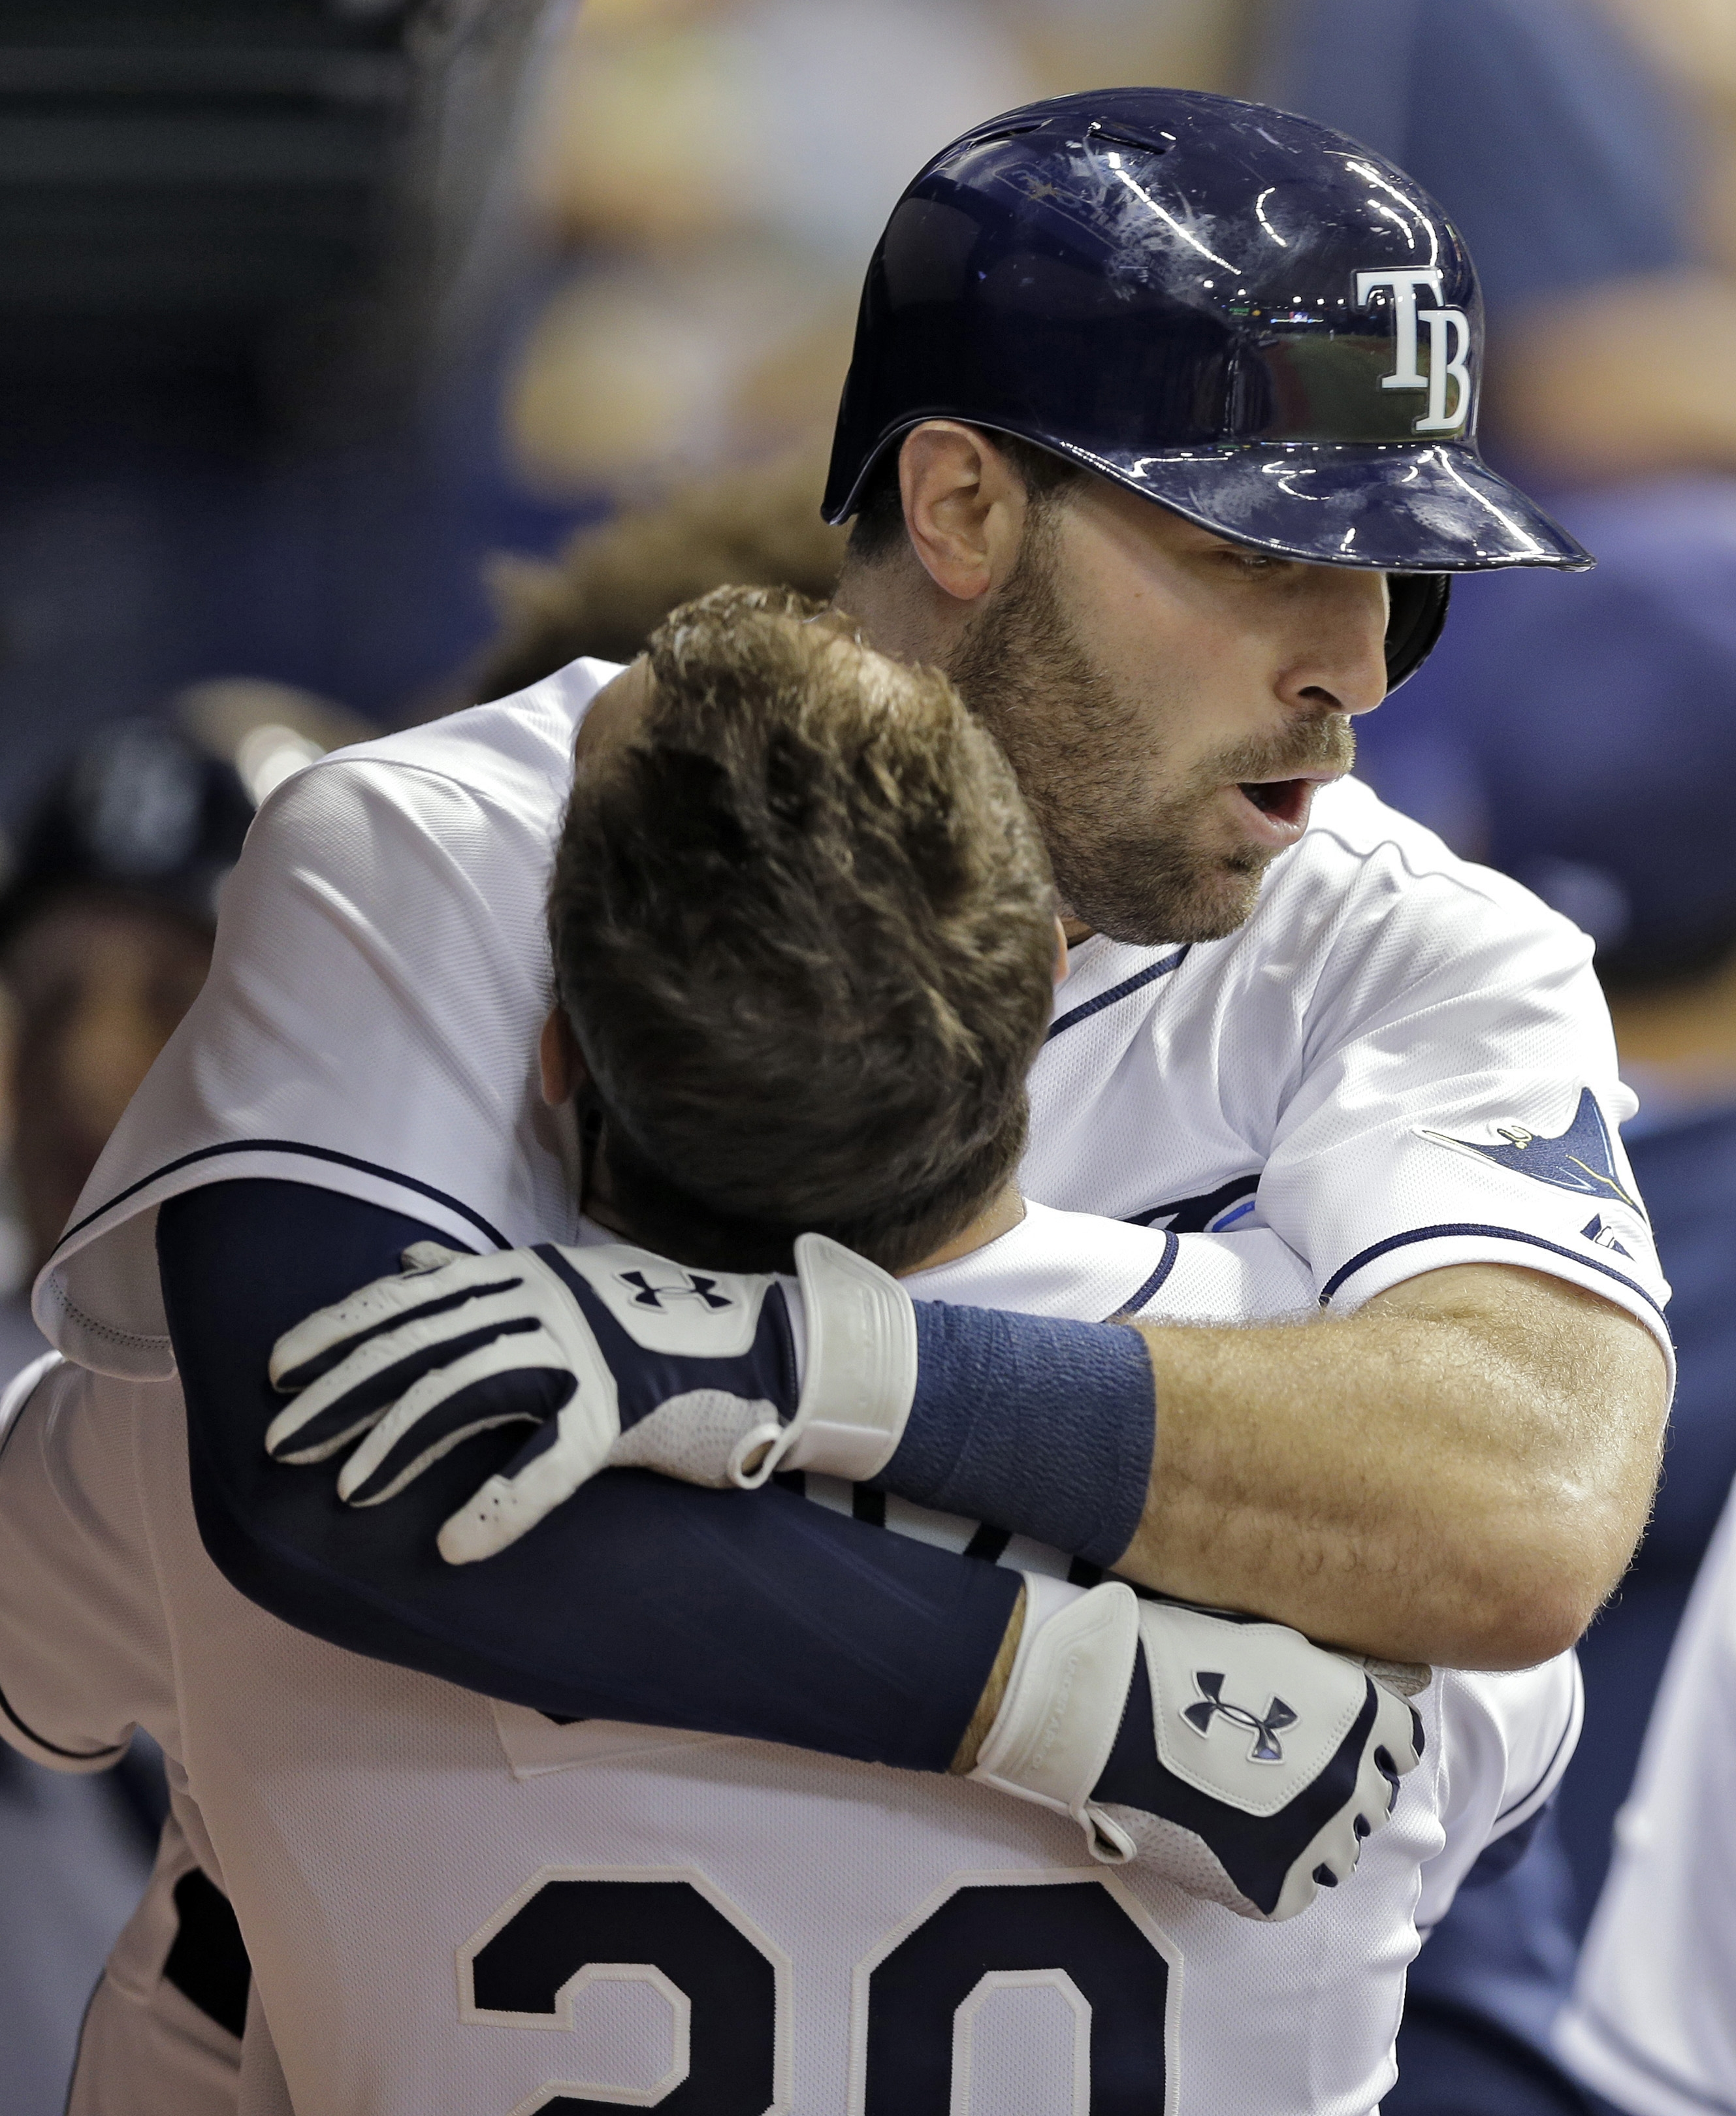 Tampa Bay Rays' Curt Casali, right, hugs Steven Souza Jr. in the dugout after Casili hit a two-run home run off Detroit Tigers starting pitcher David Price during the fourth inning of a baseball game Tuesday, July 28, 2015, in St. Petersburg, Fla.  Rays'